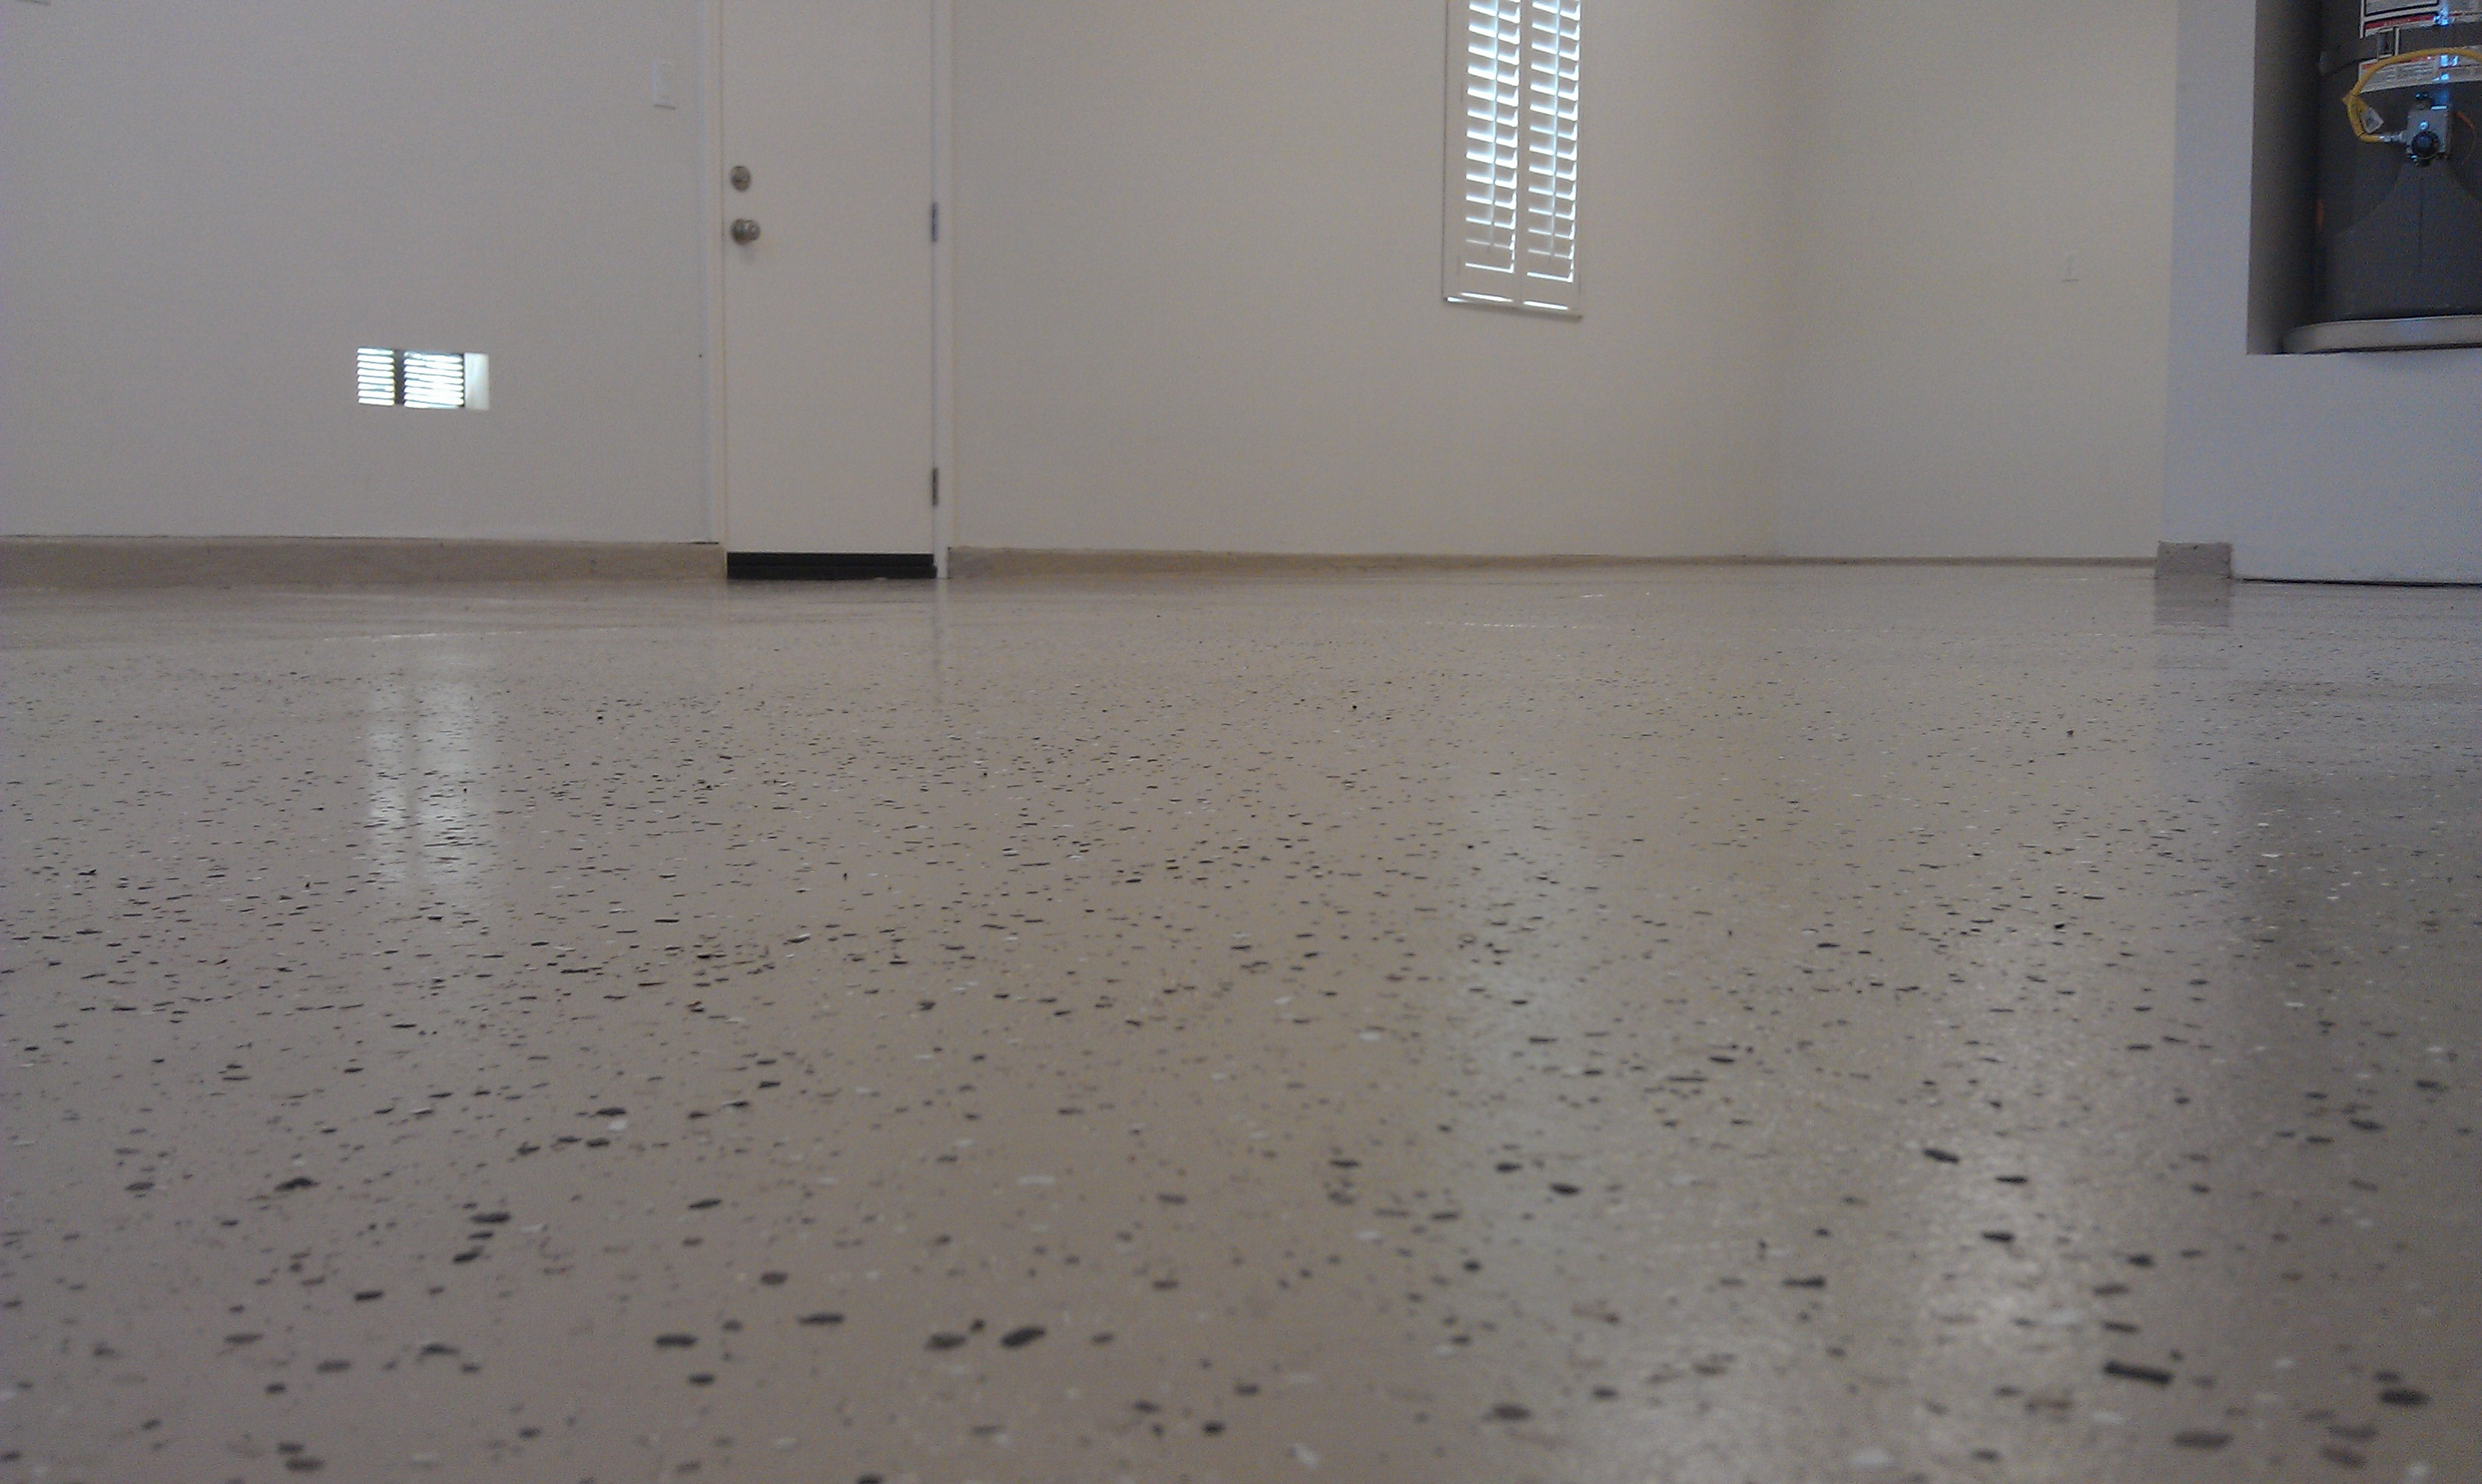 Garage Floor Epoxy Service Now Offering Epoxy Floor Coating Services Acoustic Removal Experts